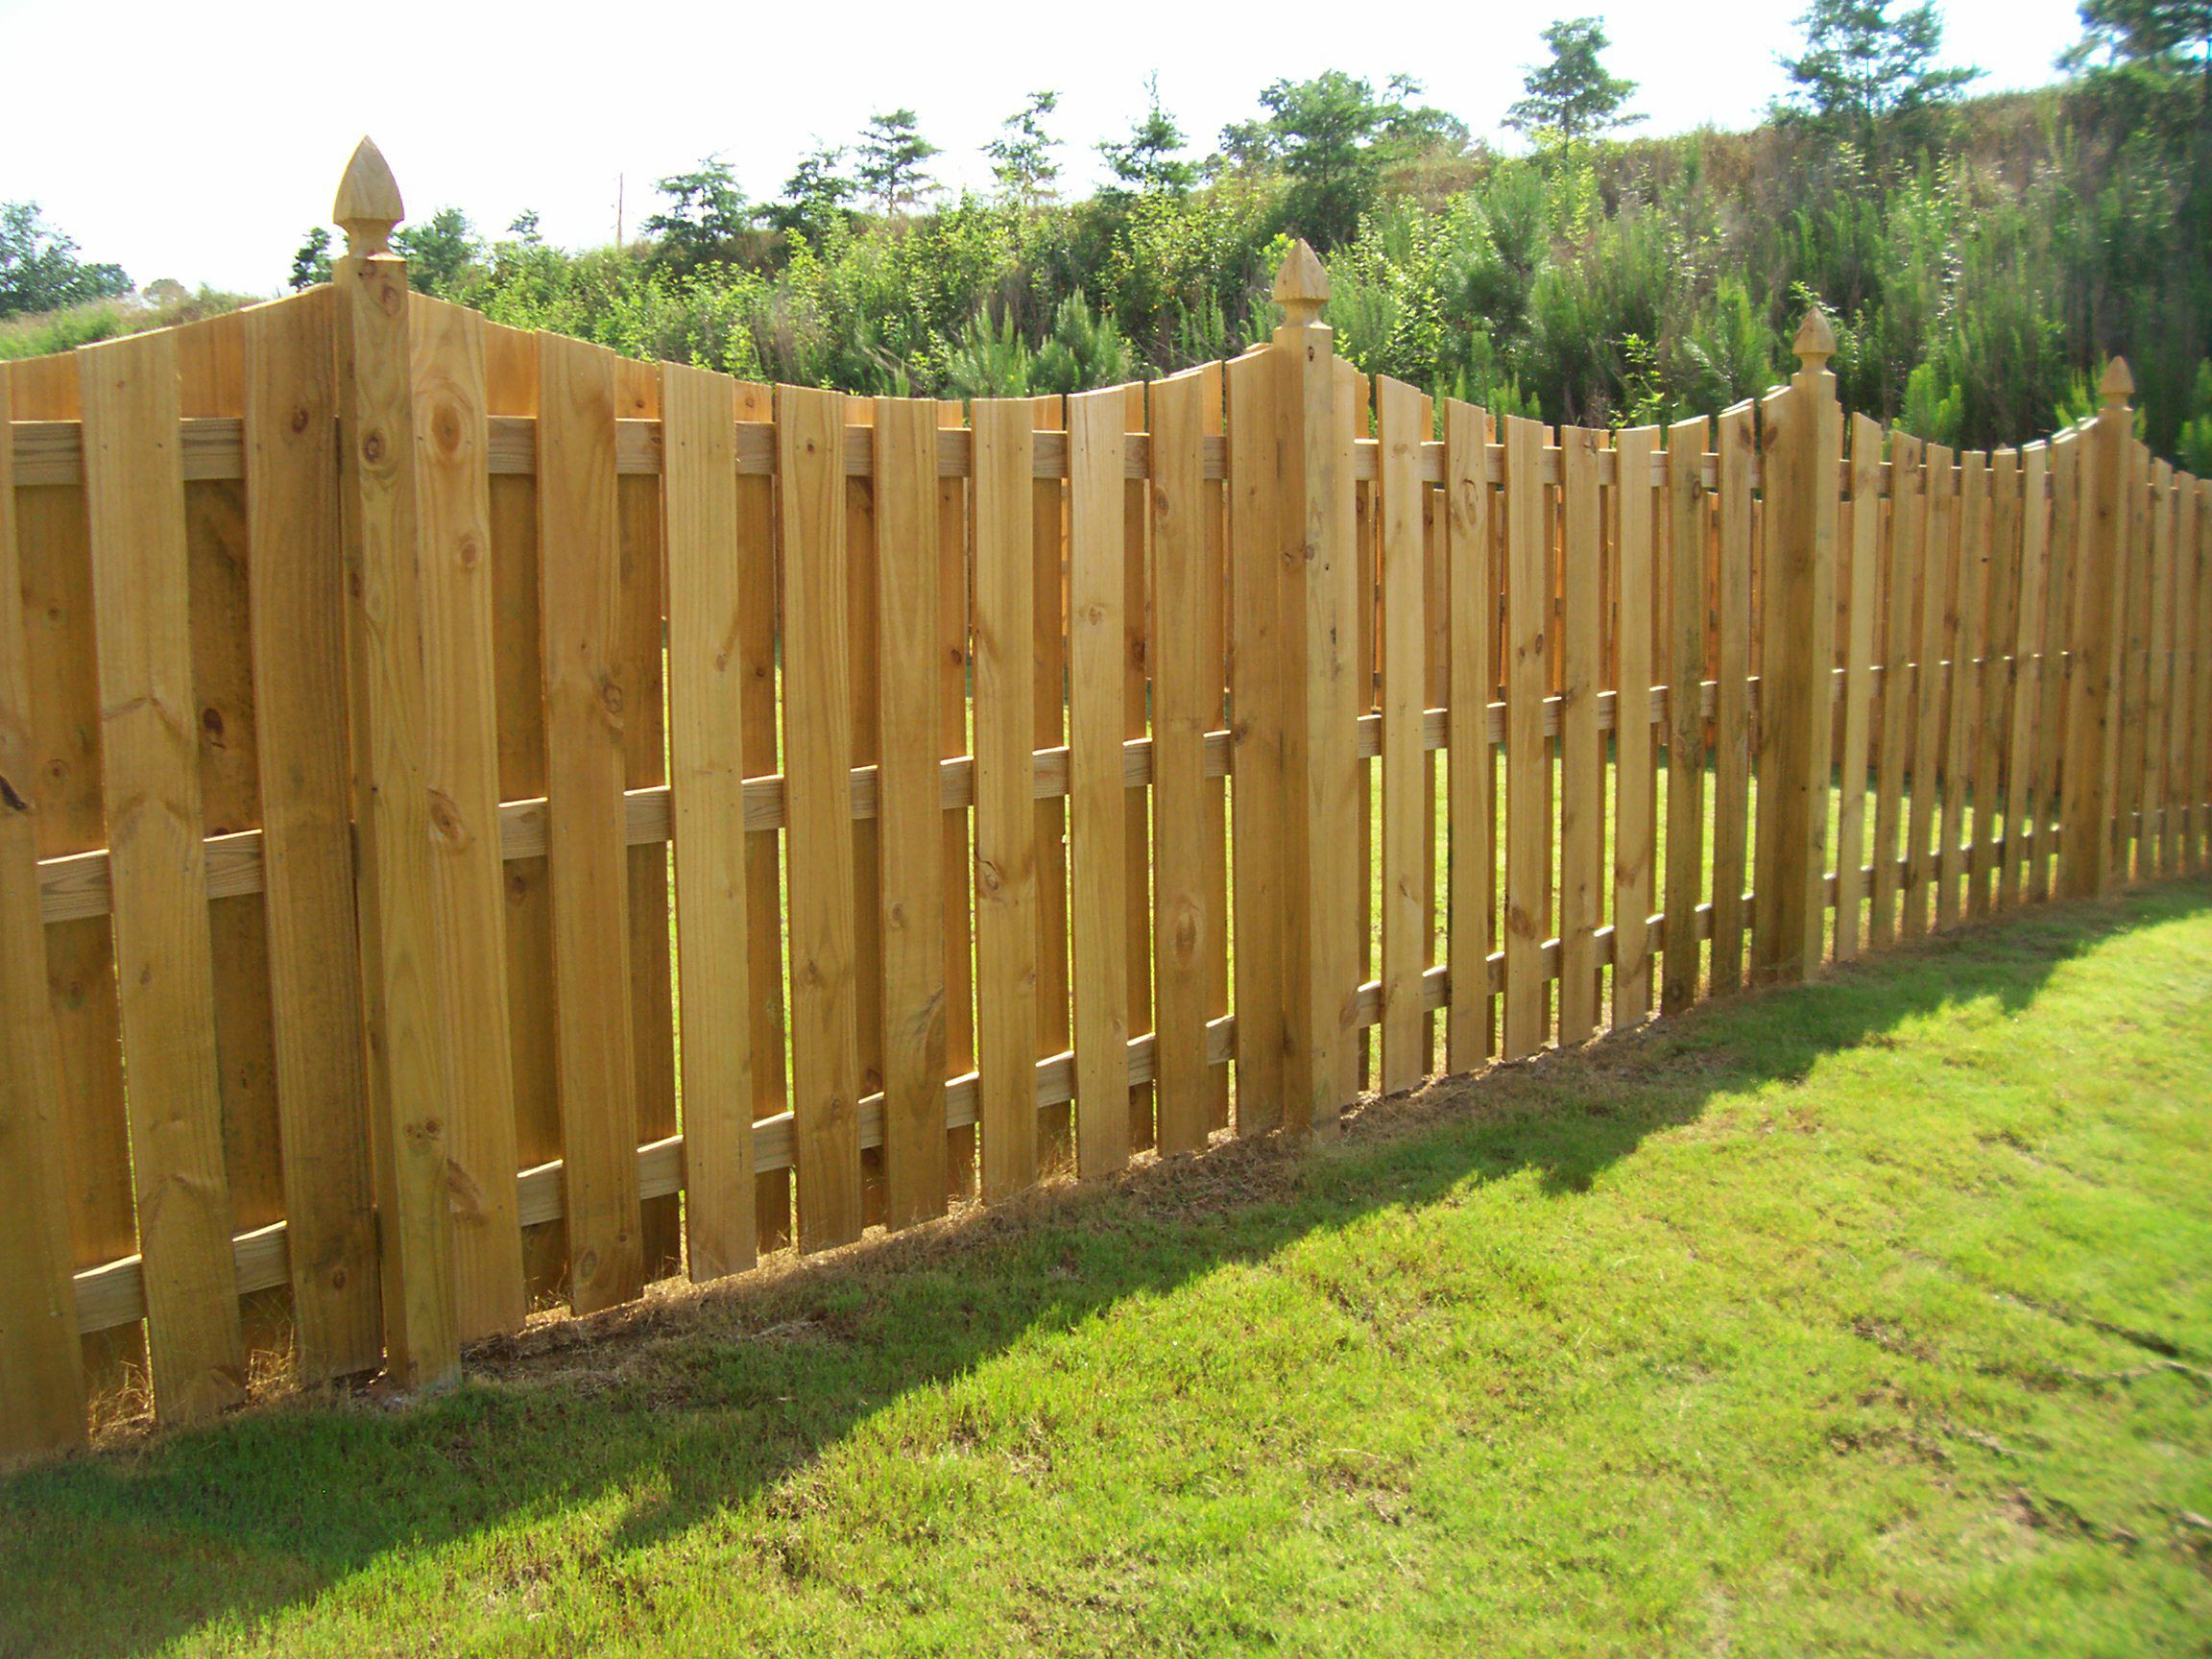 Impressive Designs Including Decorative Fences Privacy Fence Ideas Need Ideas Wood Fenceideas A Wood Check Out Our Gallery Outdoor Spaces Wood outdoor Backyard Fence Designs